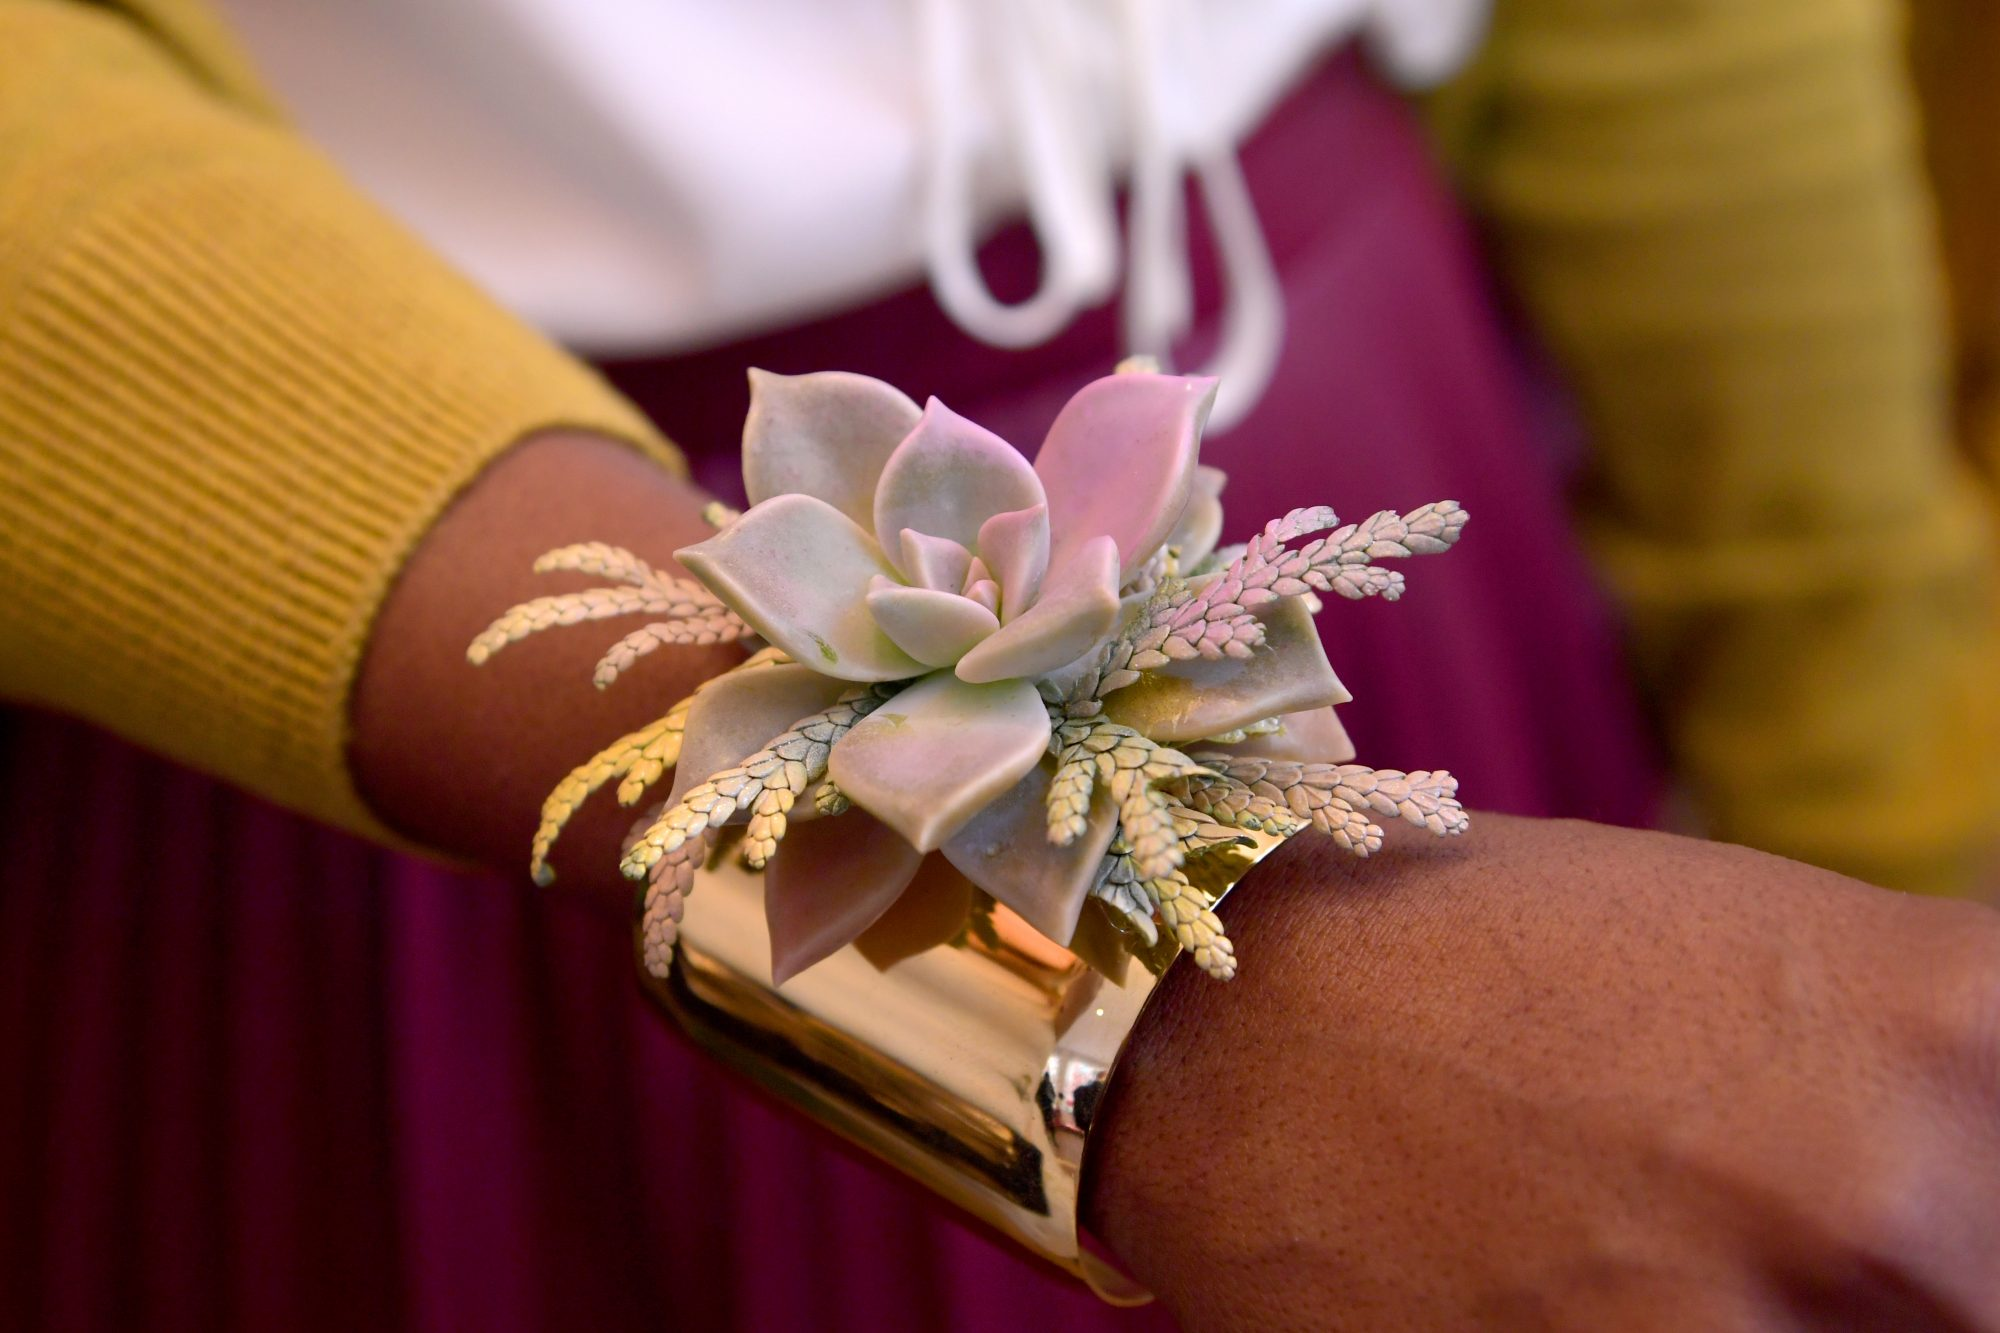 B Floral's Fresh Floral Jewelry Line, from $40